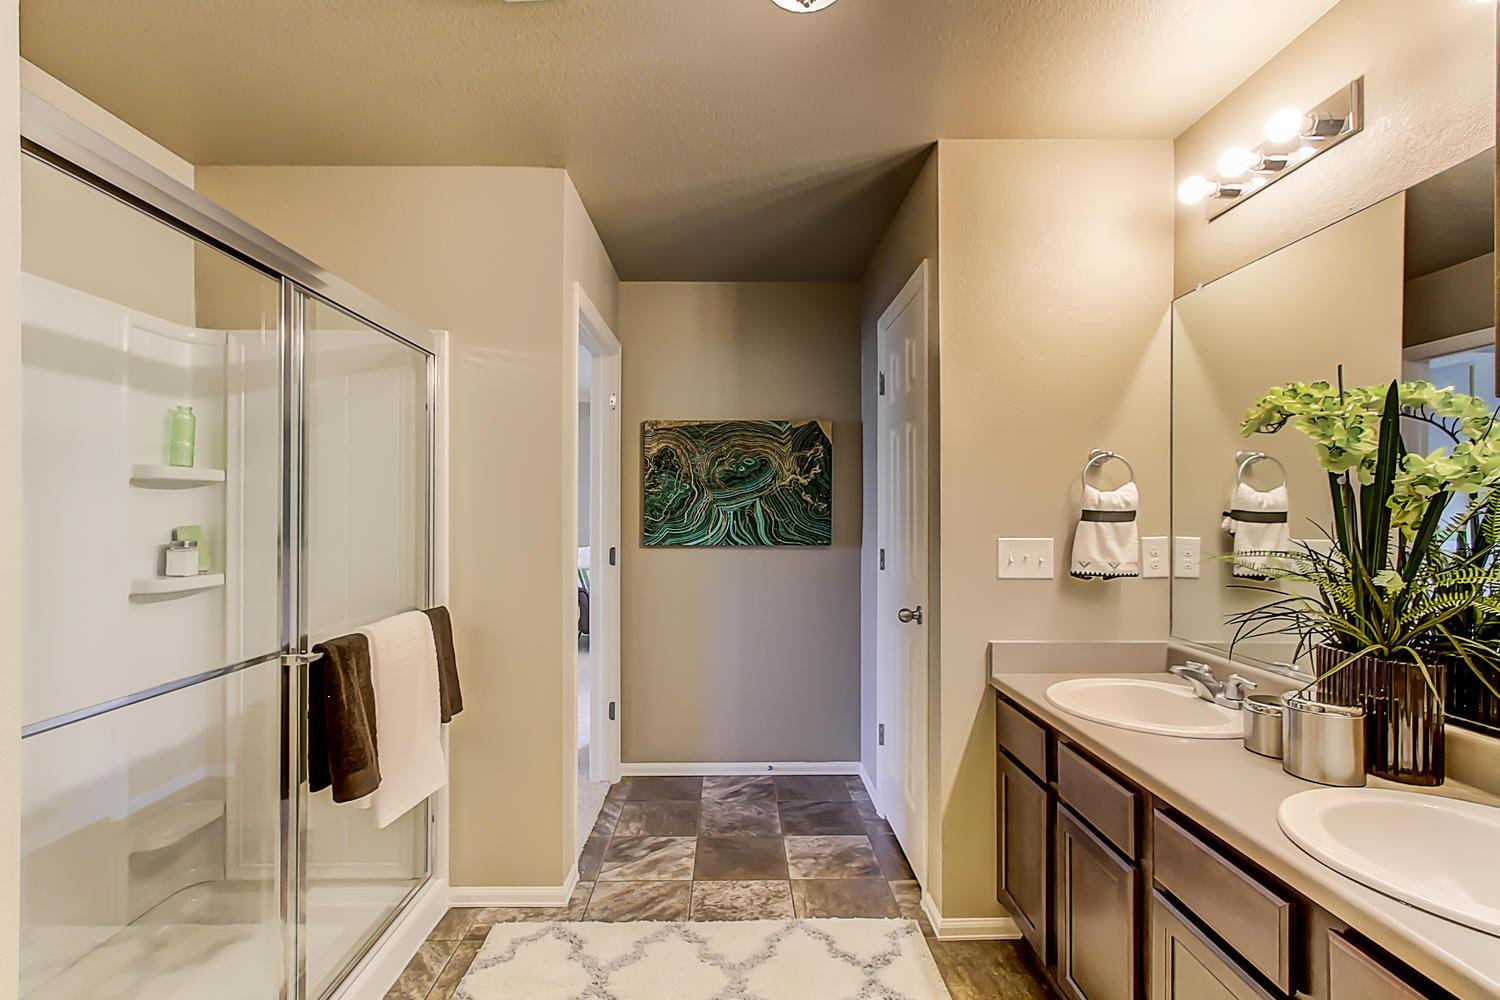 Bathroom featured in the HAYDEN By D.R. Horton in Denver, CO